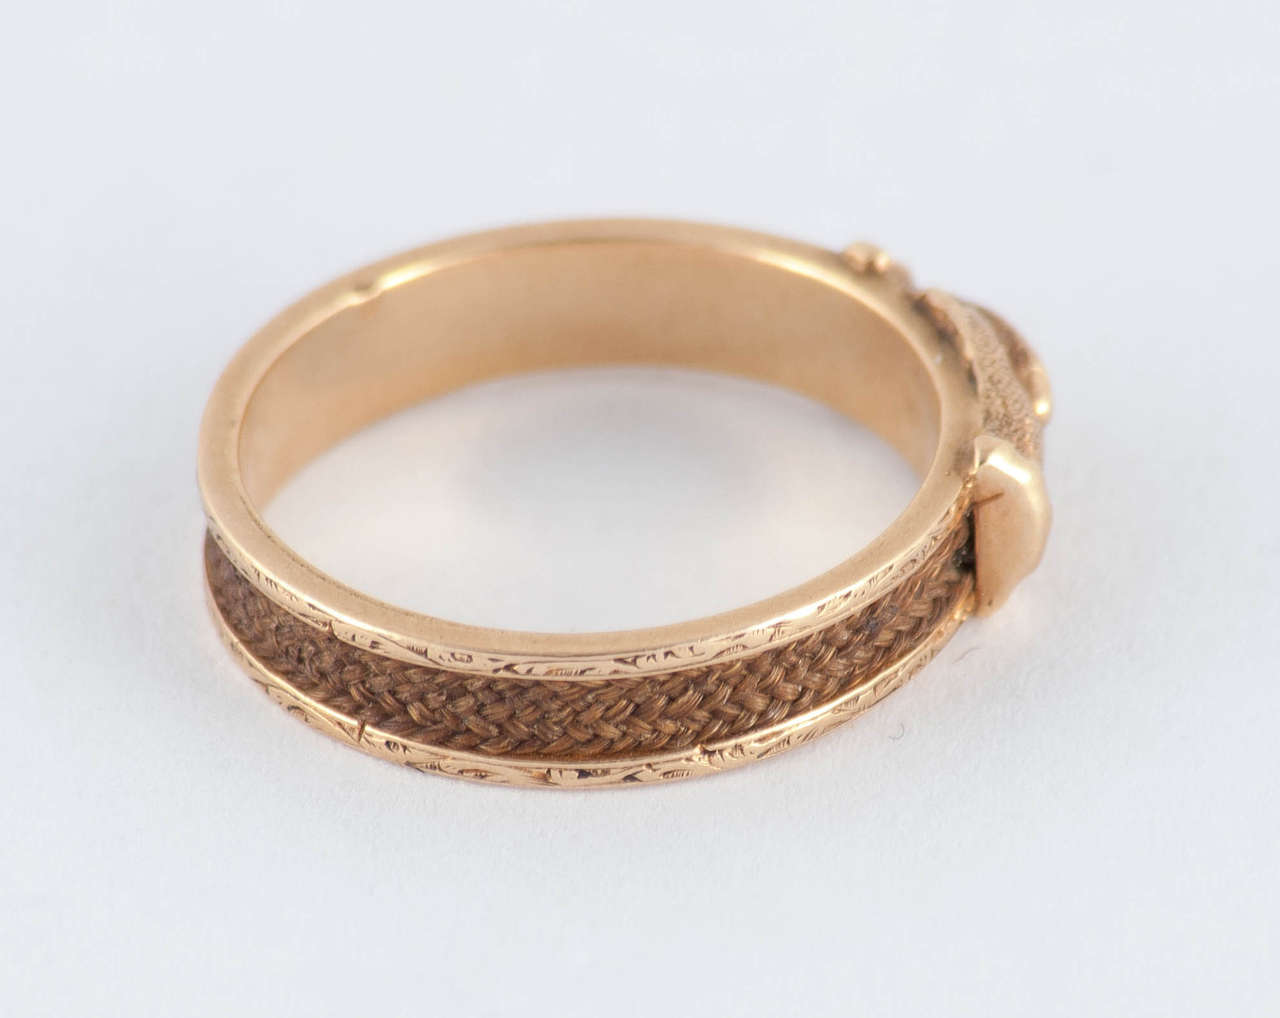 Antique Gold And Hair Fede Ring For Sale At 1stdibs